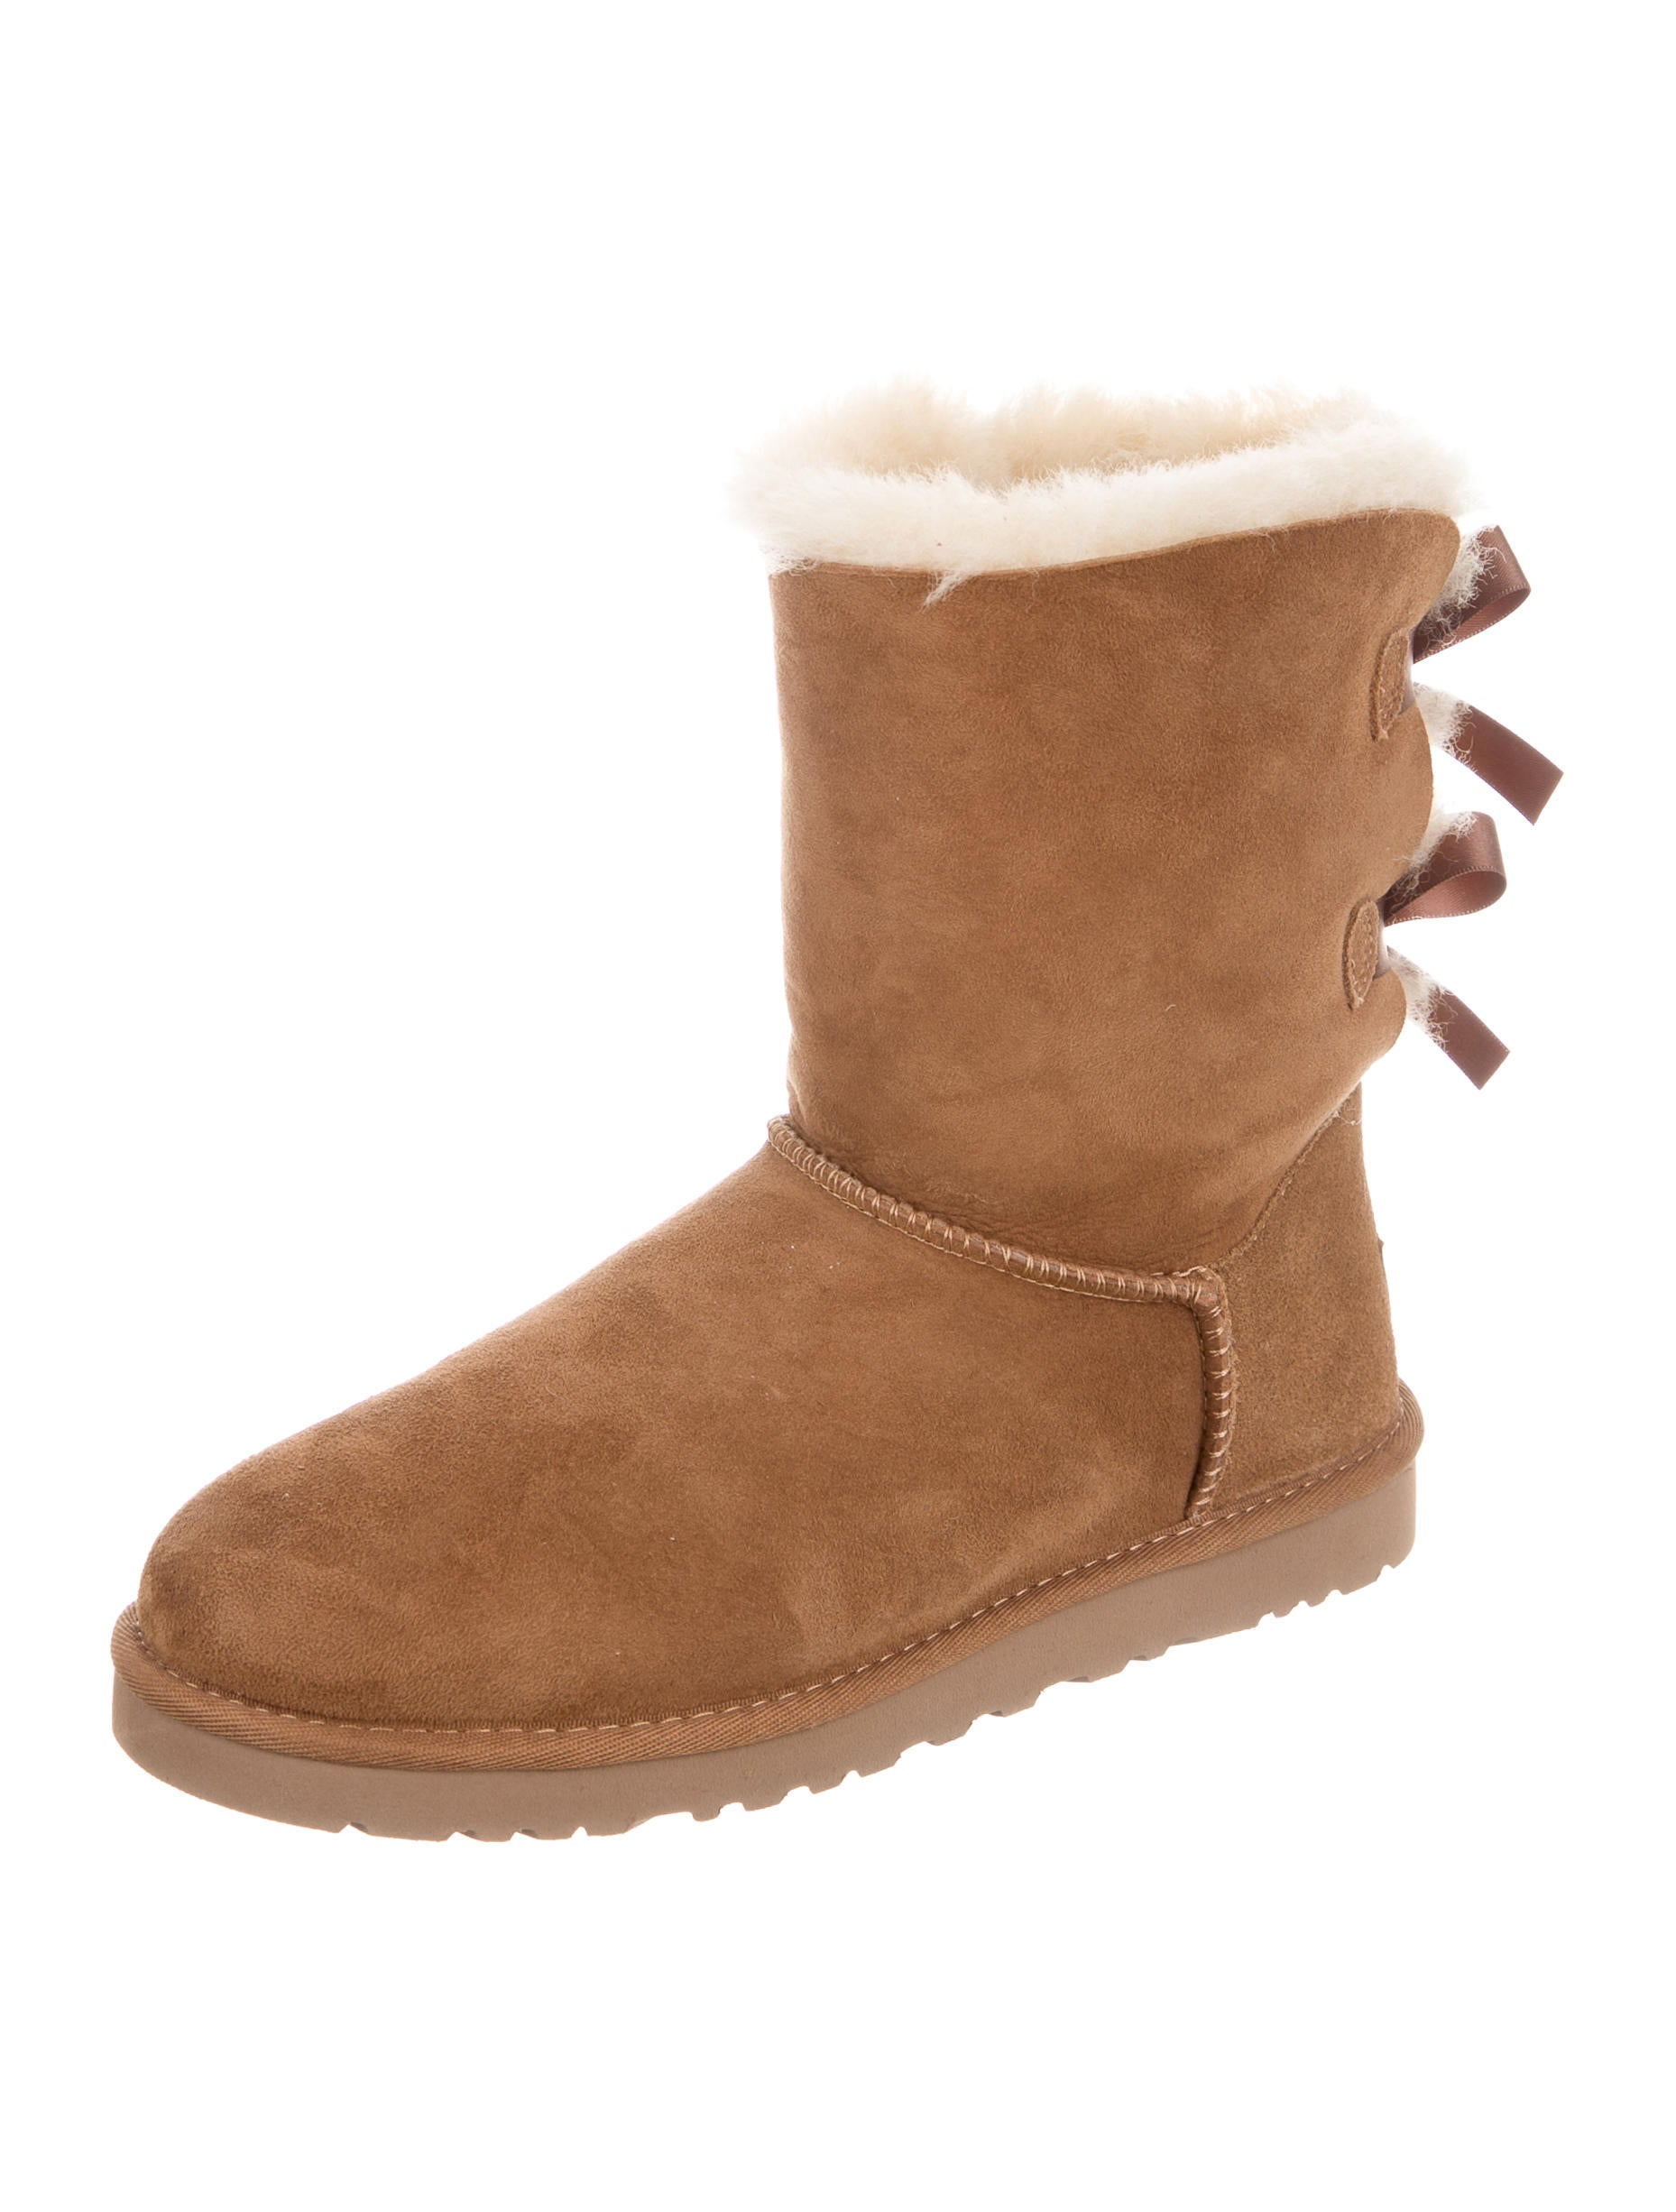 ugg australia suede bailey bow ankle boots shoes